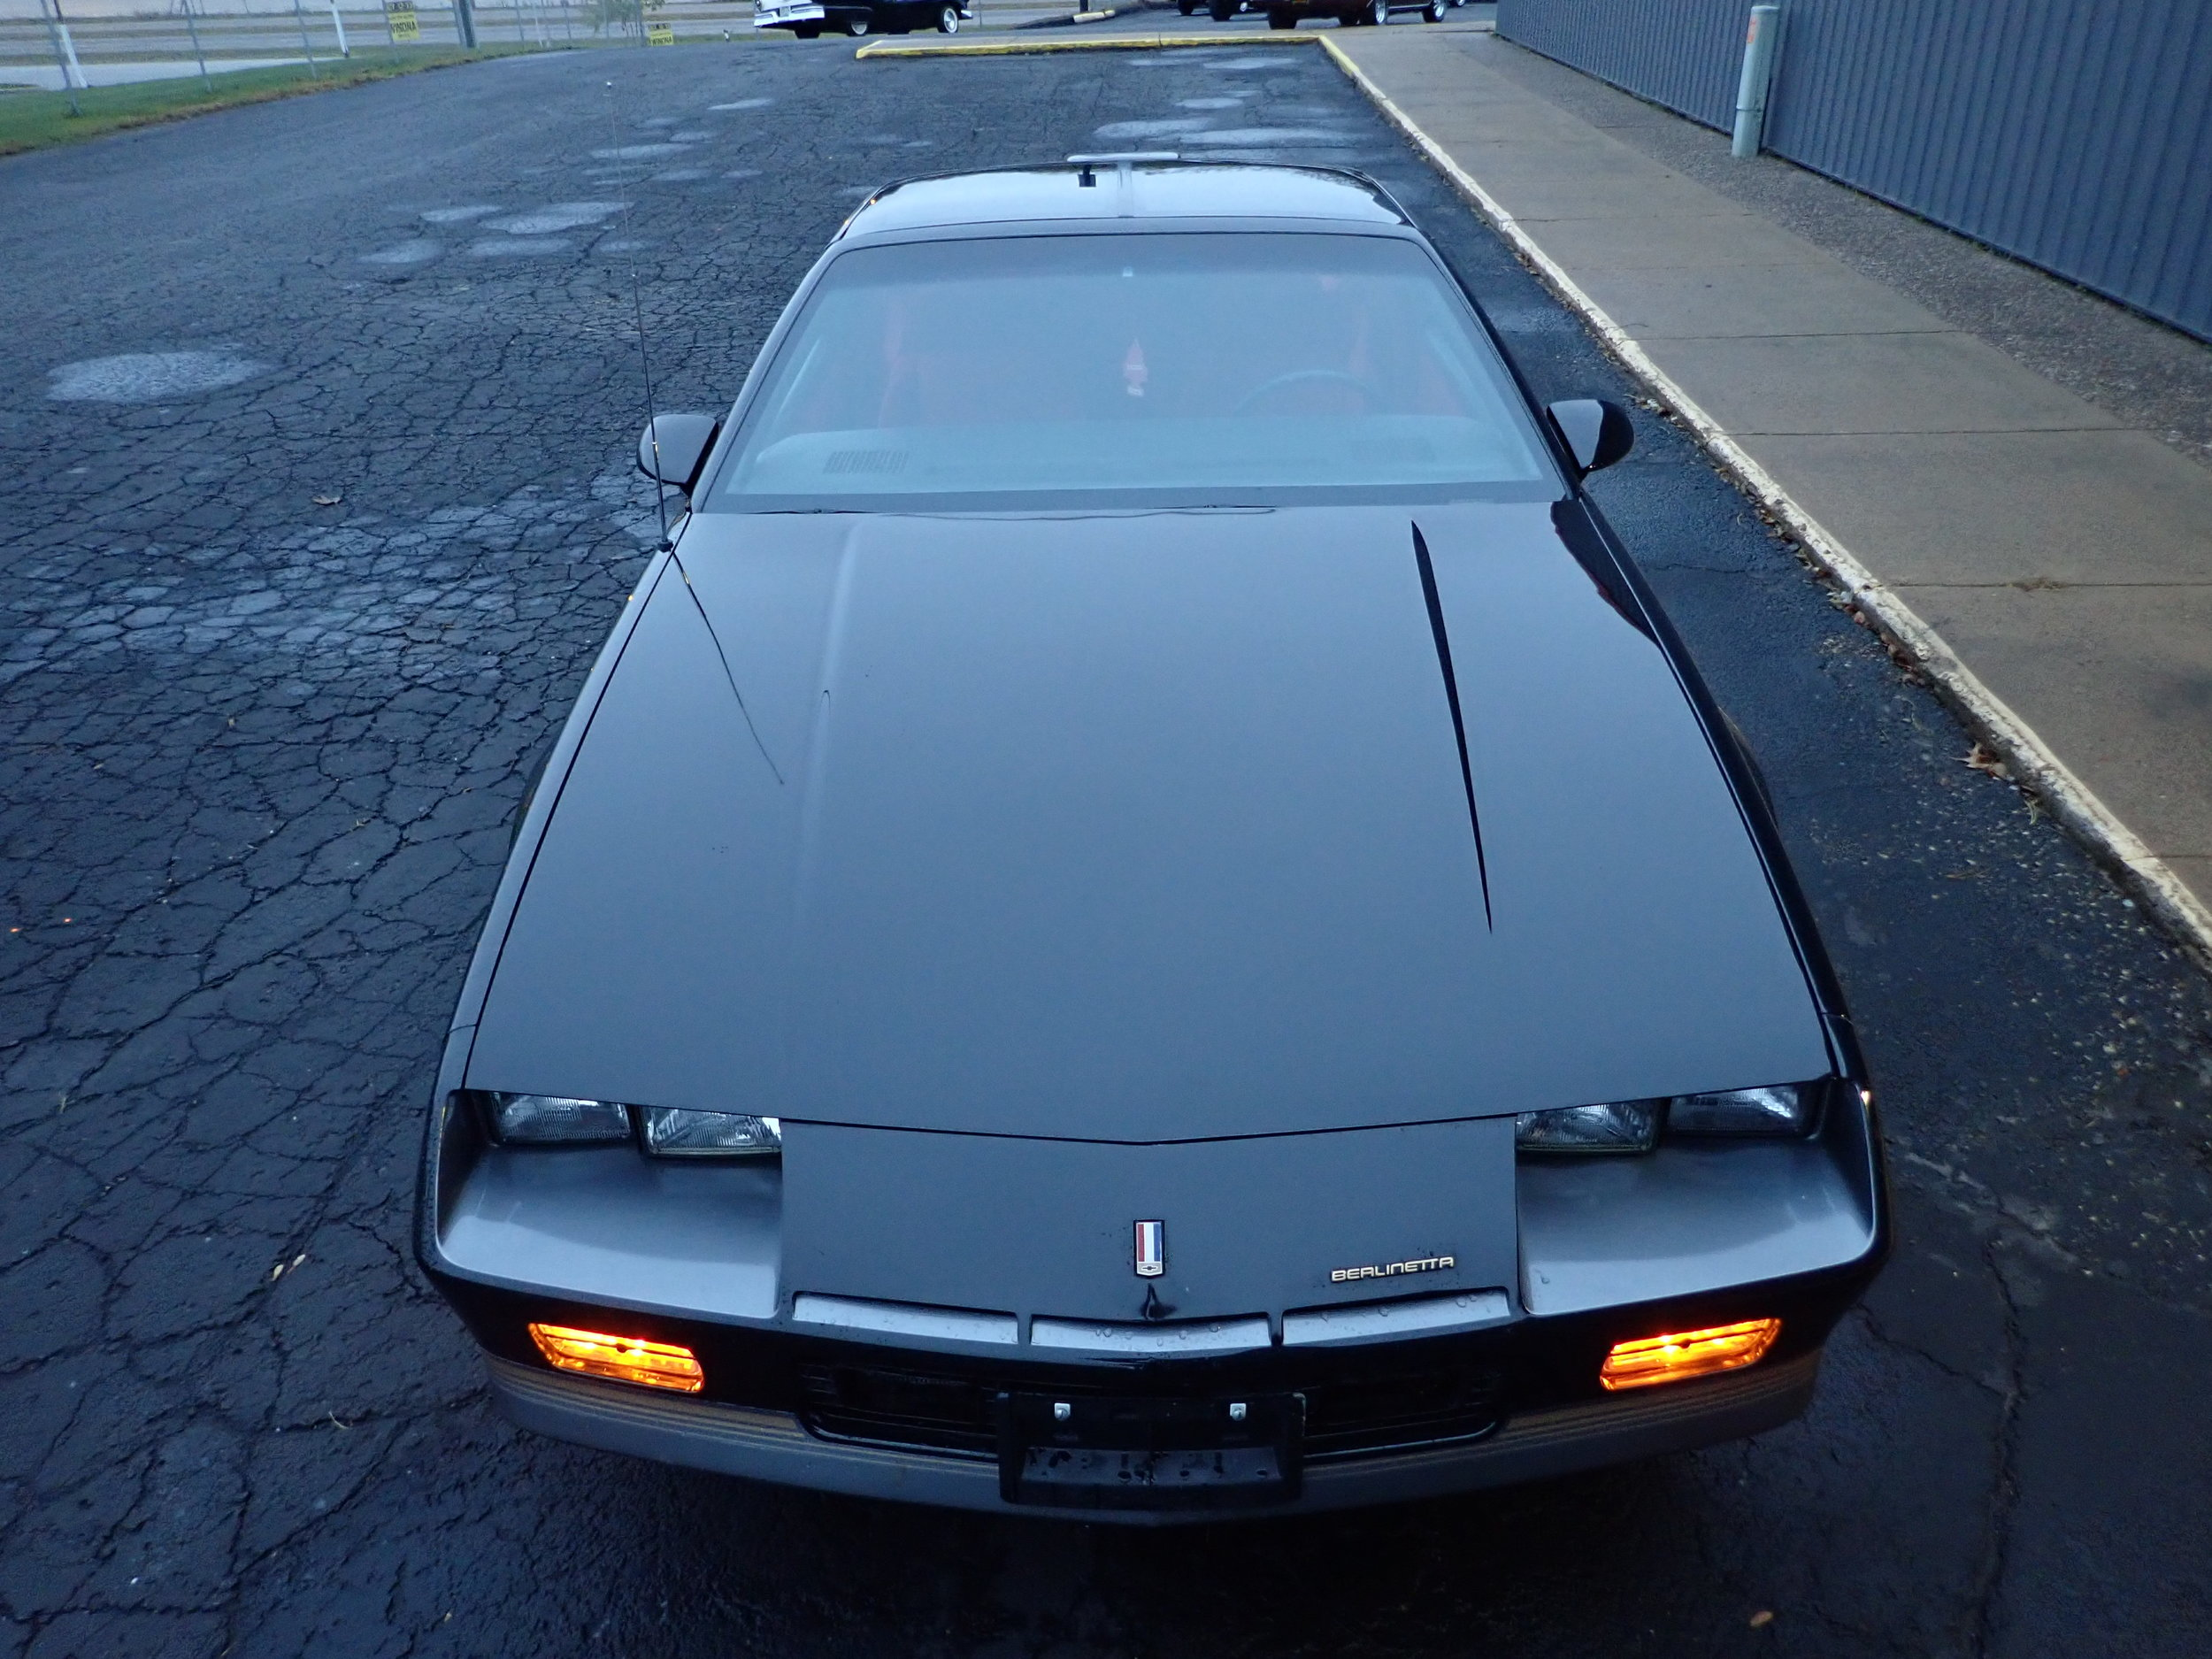 8 1986 Chevrolet Camaro Berlinetta Wherz F28.JPG